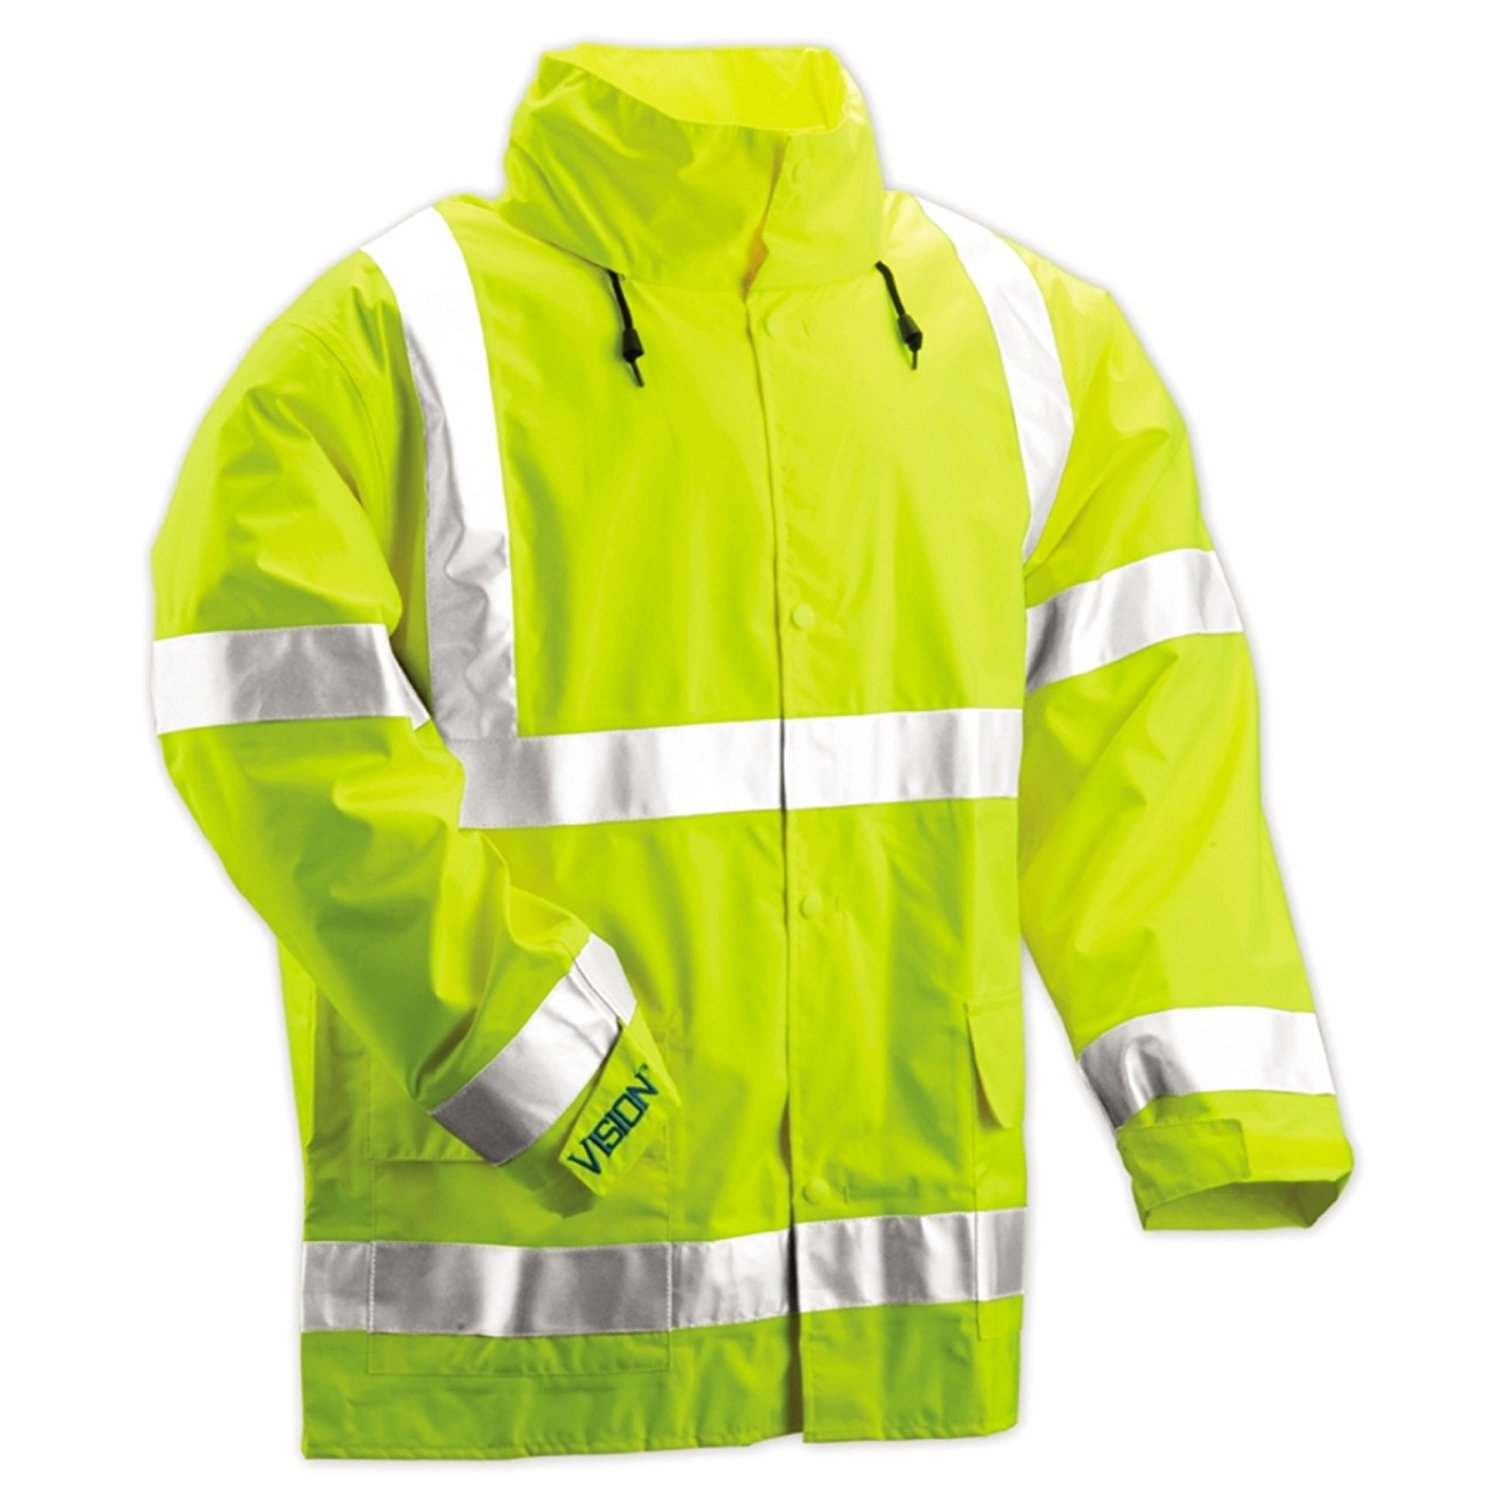 TINGLEY J22208 Rain Jacket with Hood Snaps, Green, XL